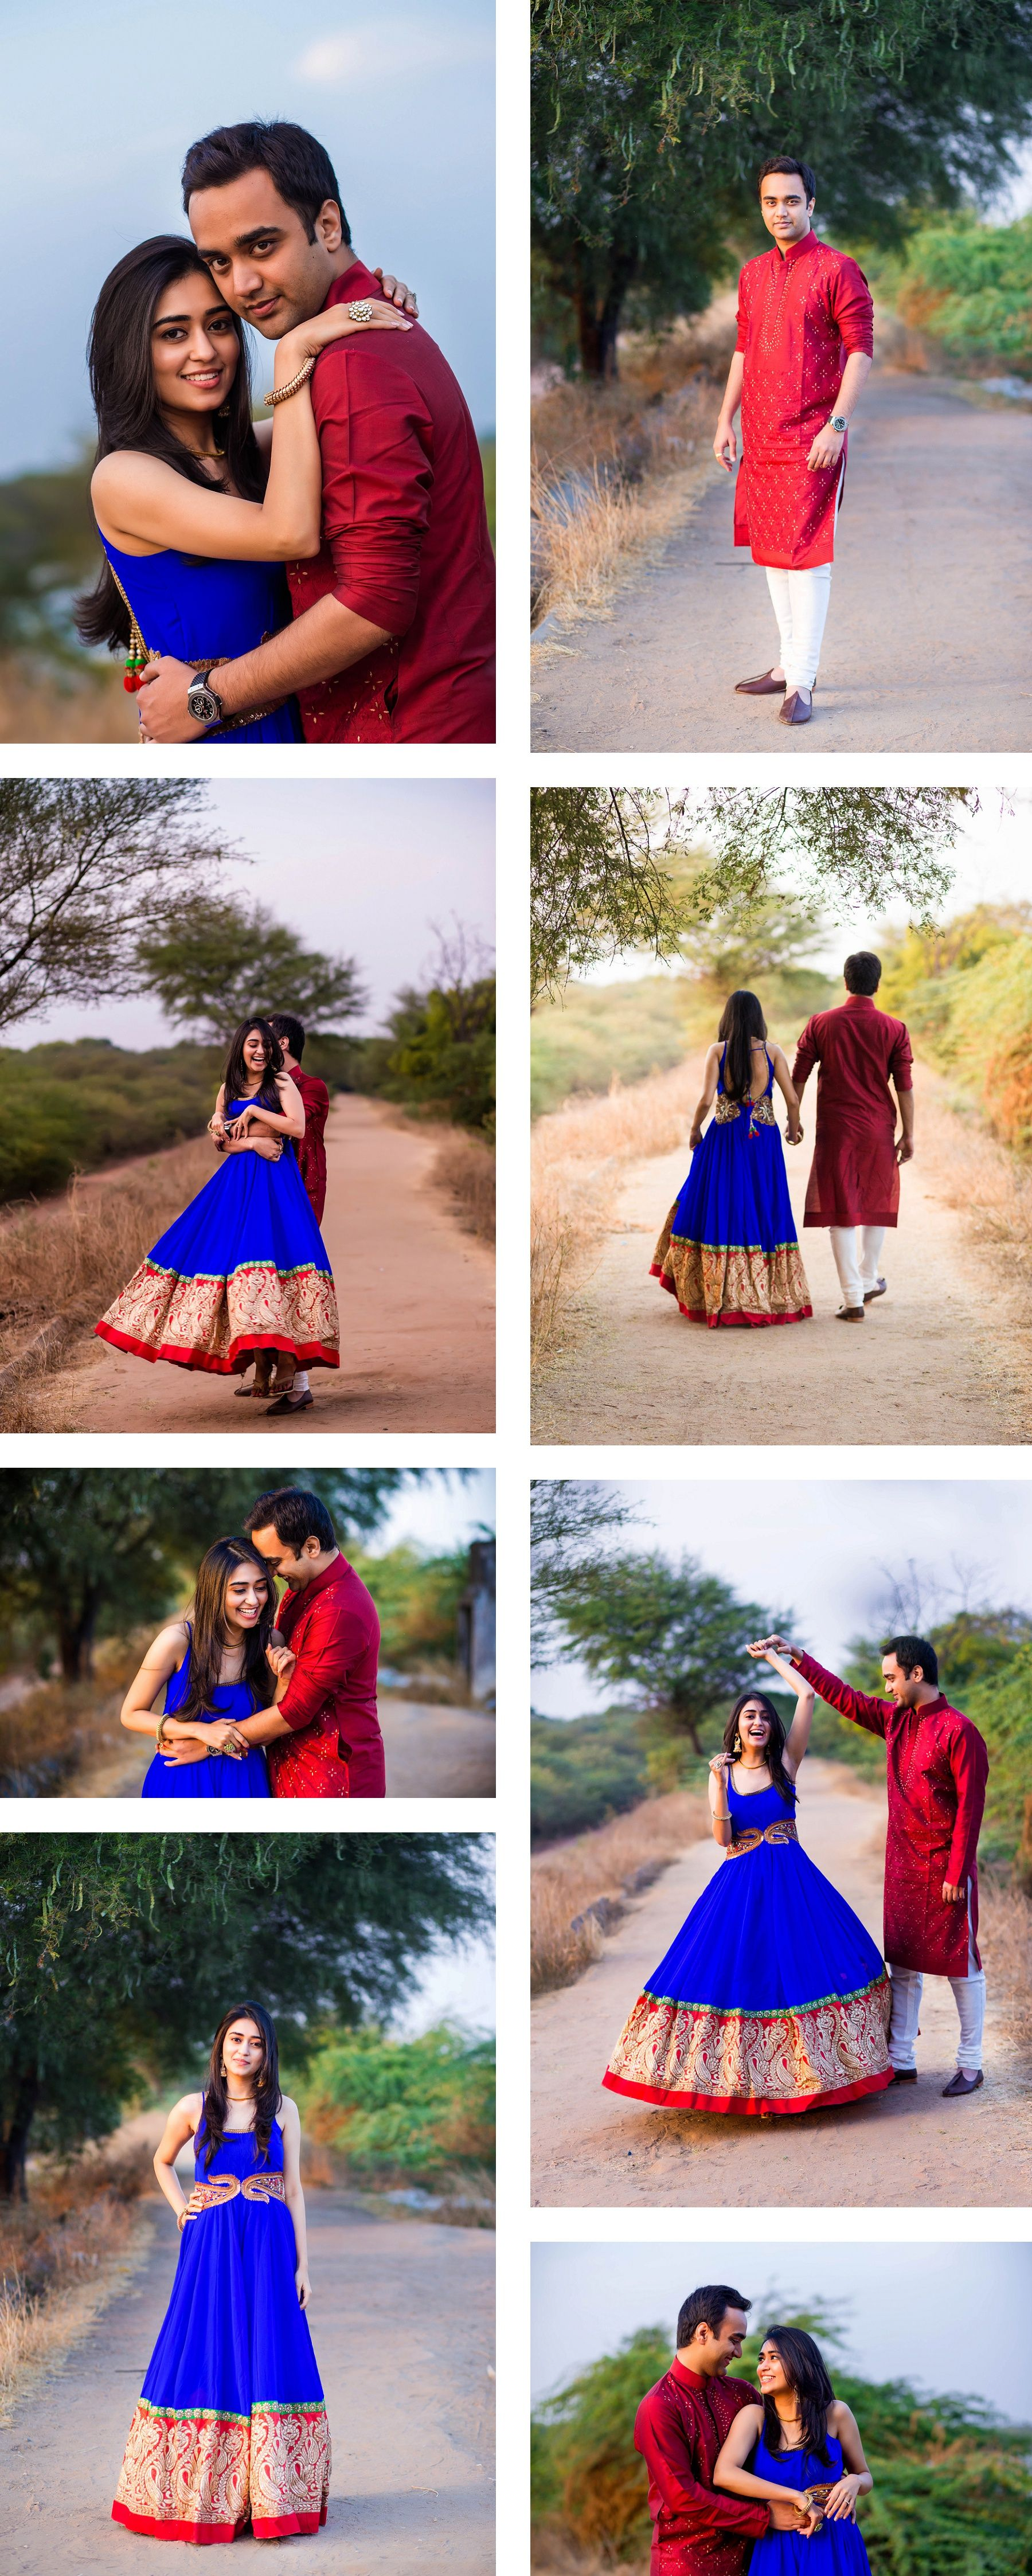 Pre wedding shoot in the woods super cute couple poses gorgeous